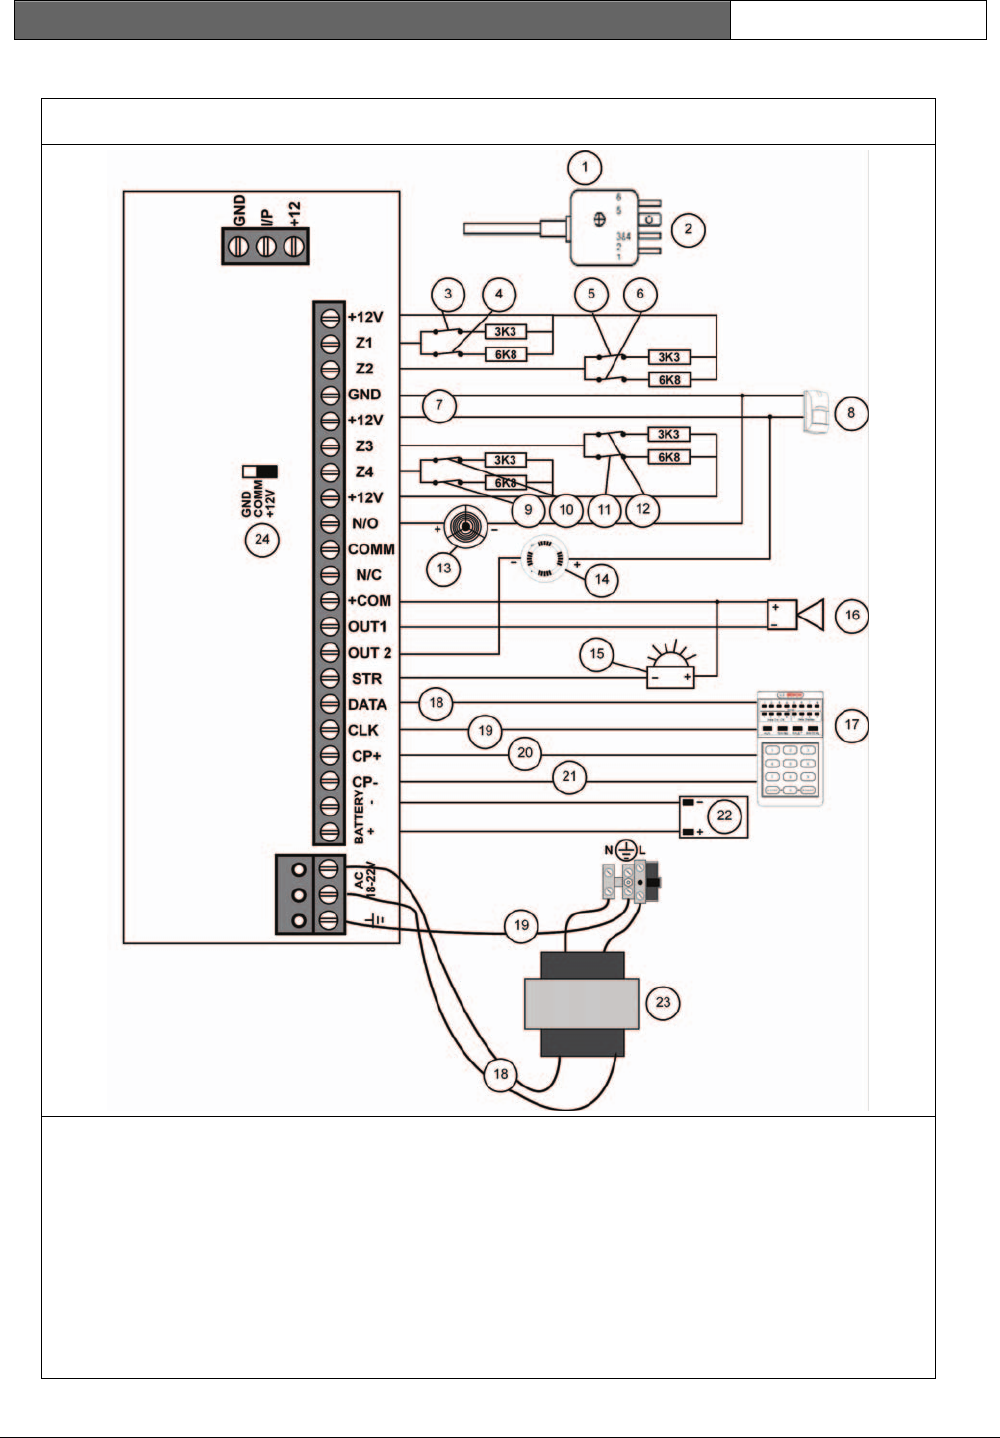 62ed5533 4bab 4275 93fe f9d107e9b2f9 bg5f bosch fire alarm wiring diagram gandul 45 77 79 119 radionics 4112 wiring diagram at eliteediting.co